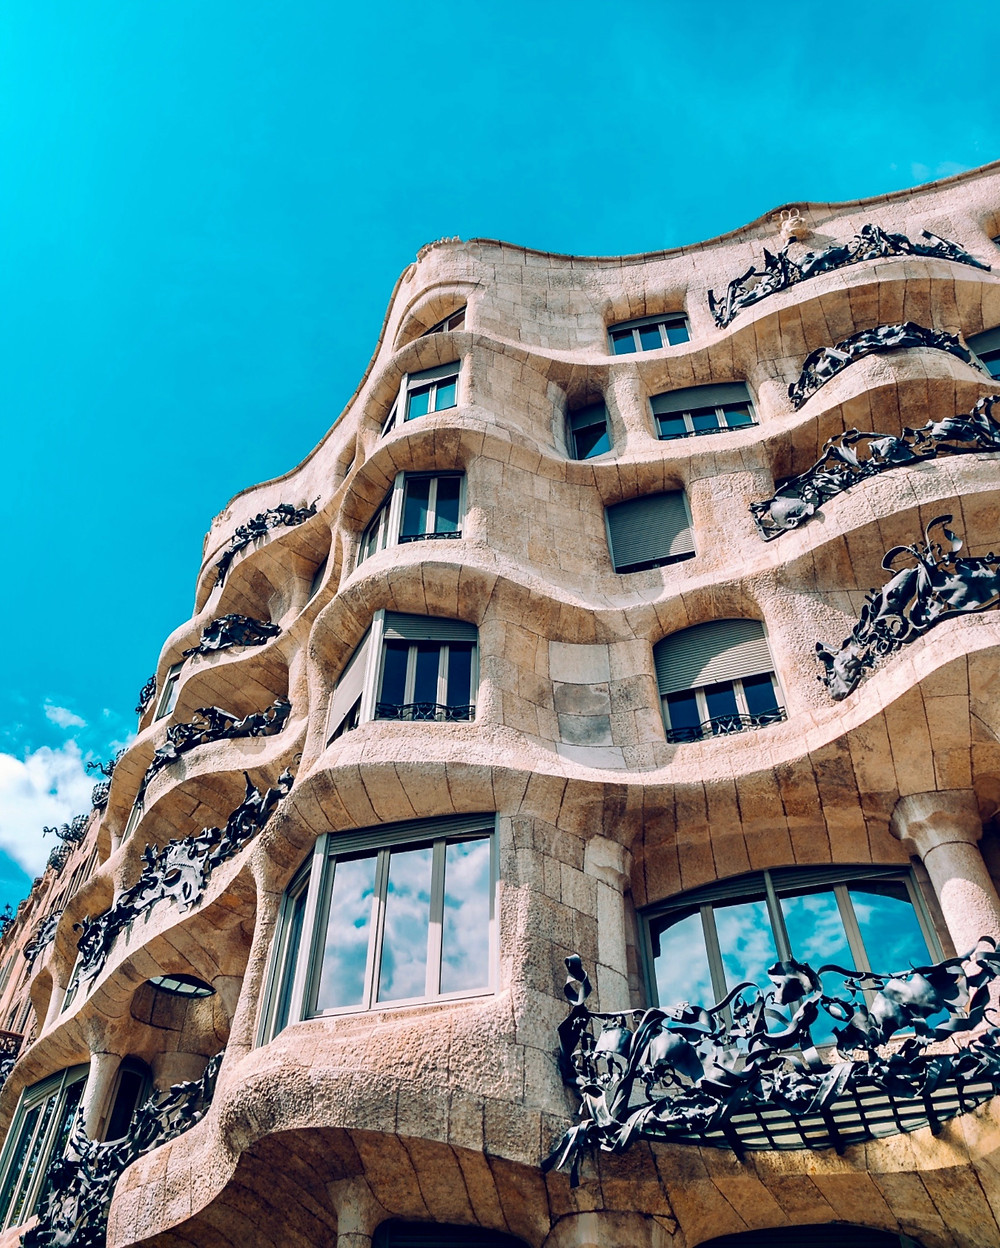 the curvy undulating facade of Gaudi's Casa Mila